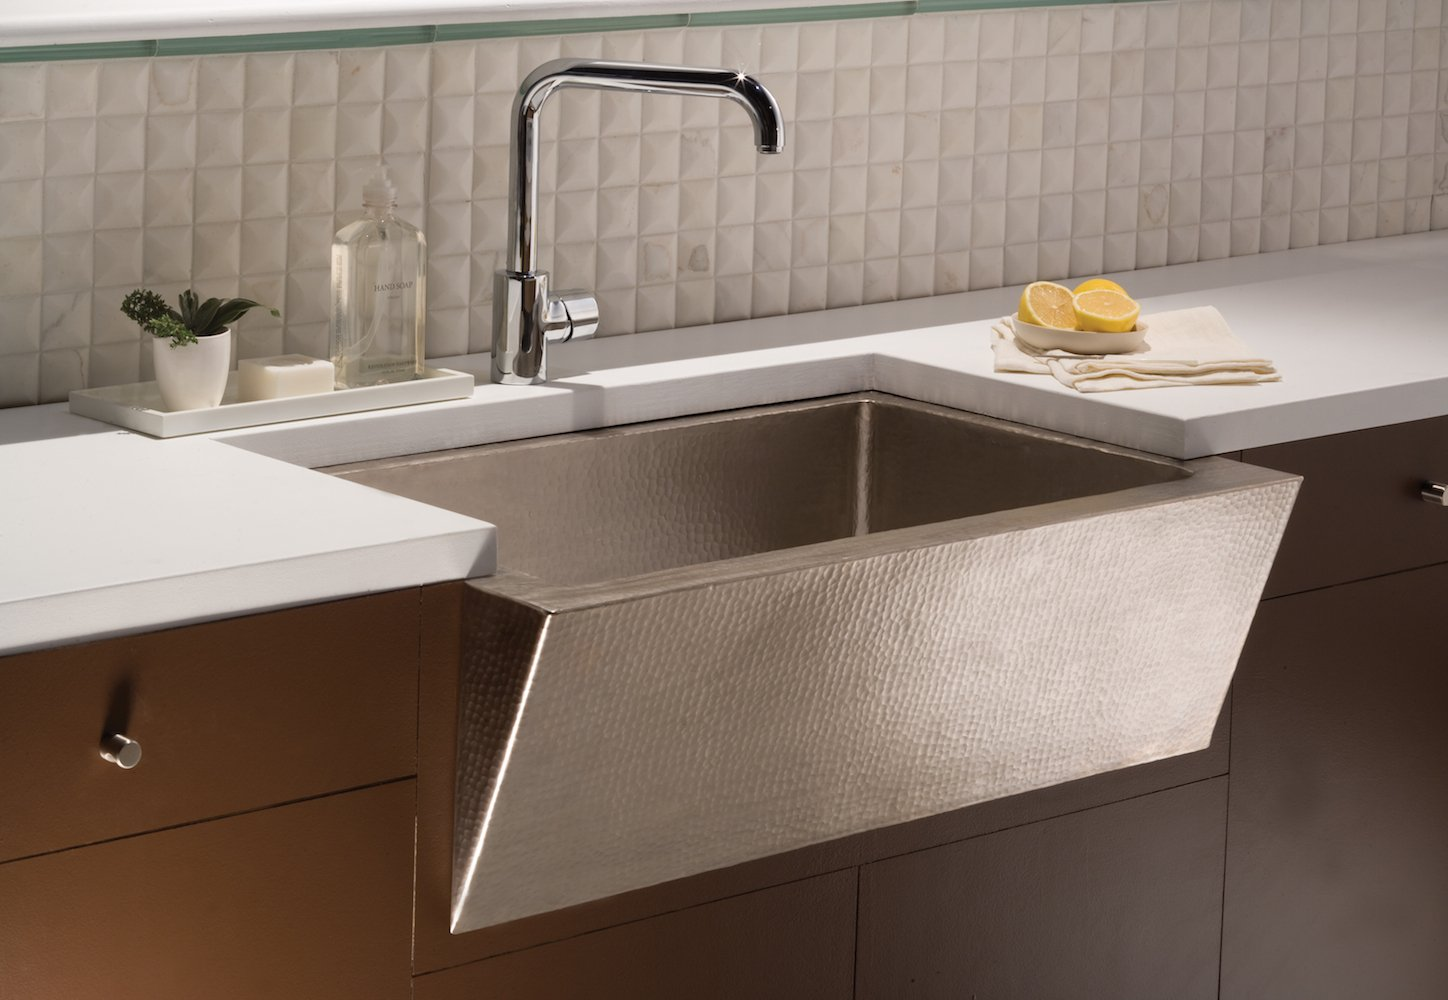 Native Trails Kitchen Sinks - Copper - Zuma CPK590 - Brushed Nickel Finish